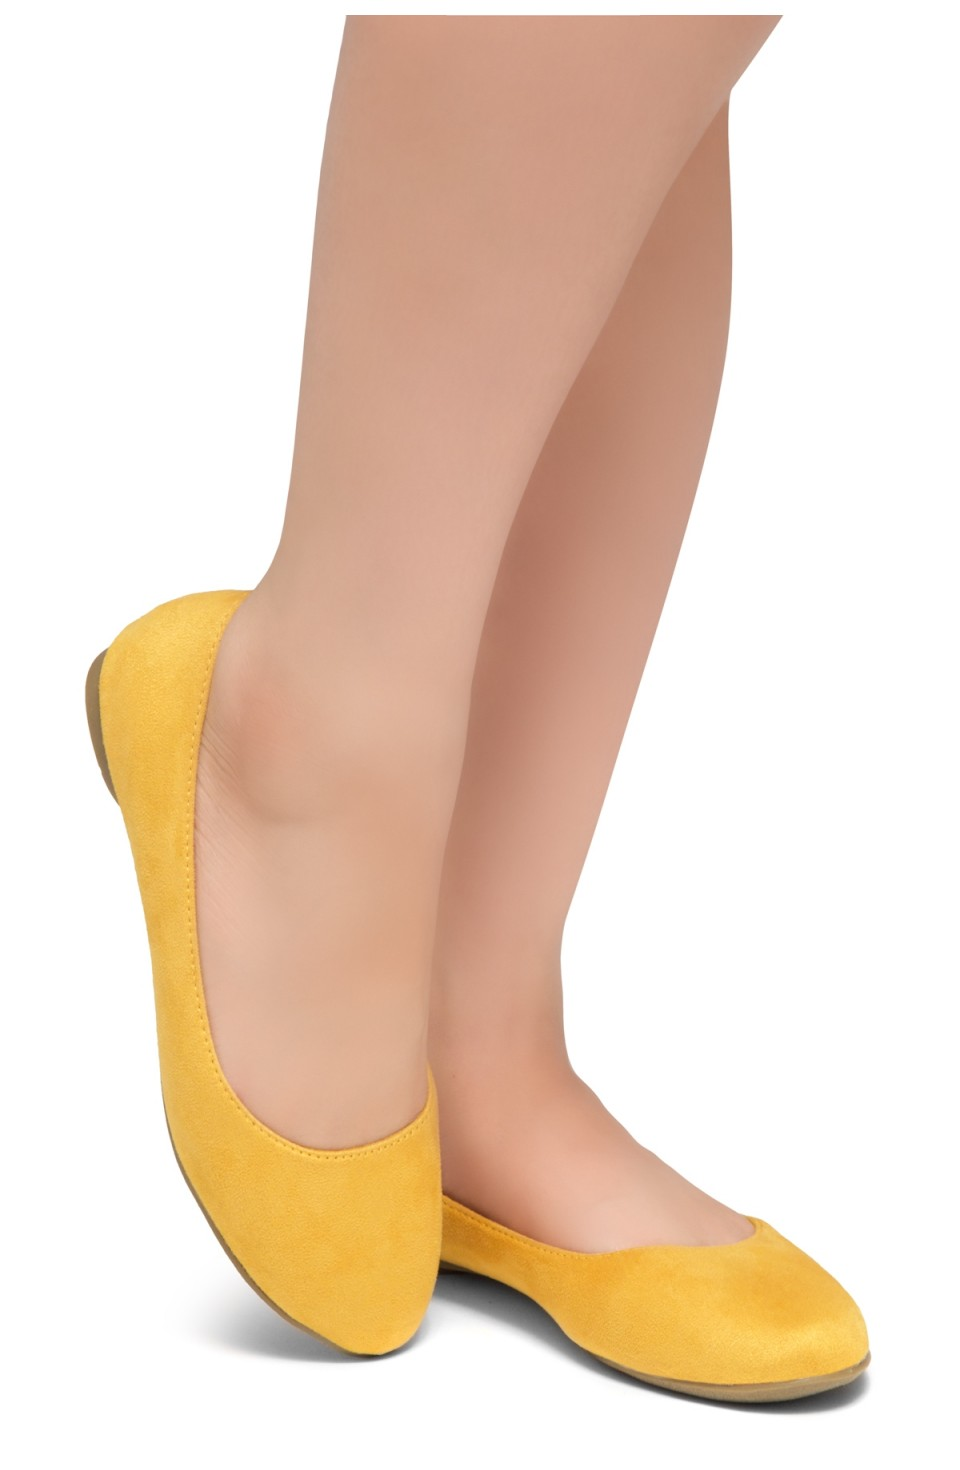 HerStyle Ever Memory -Almond Toe, No detail, Ballet Flat (Mustard)